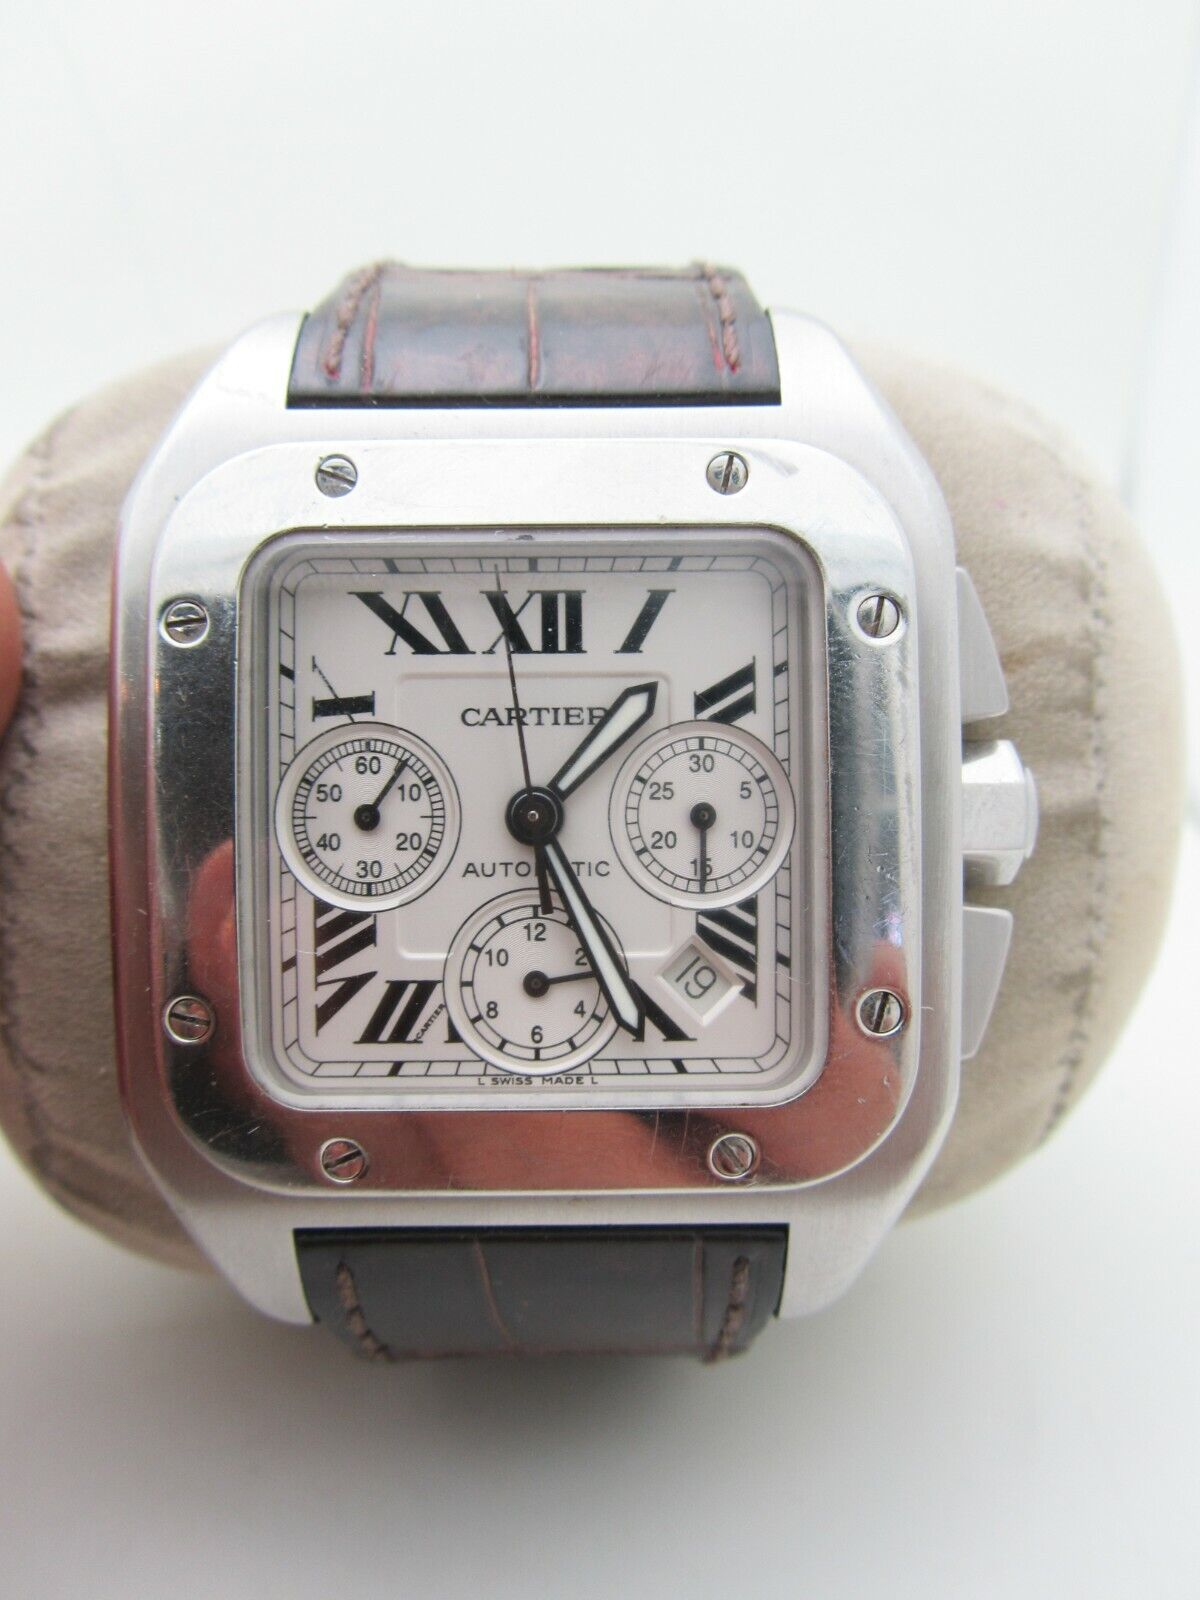 Pre-owned Cartier Santos Men's Chrono. Automatic SS watch 208195LX 2740 - watch picture 1